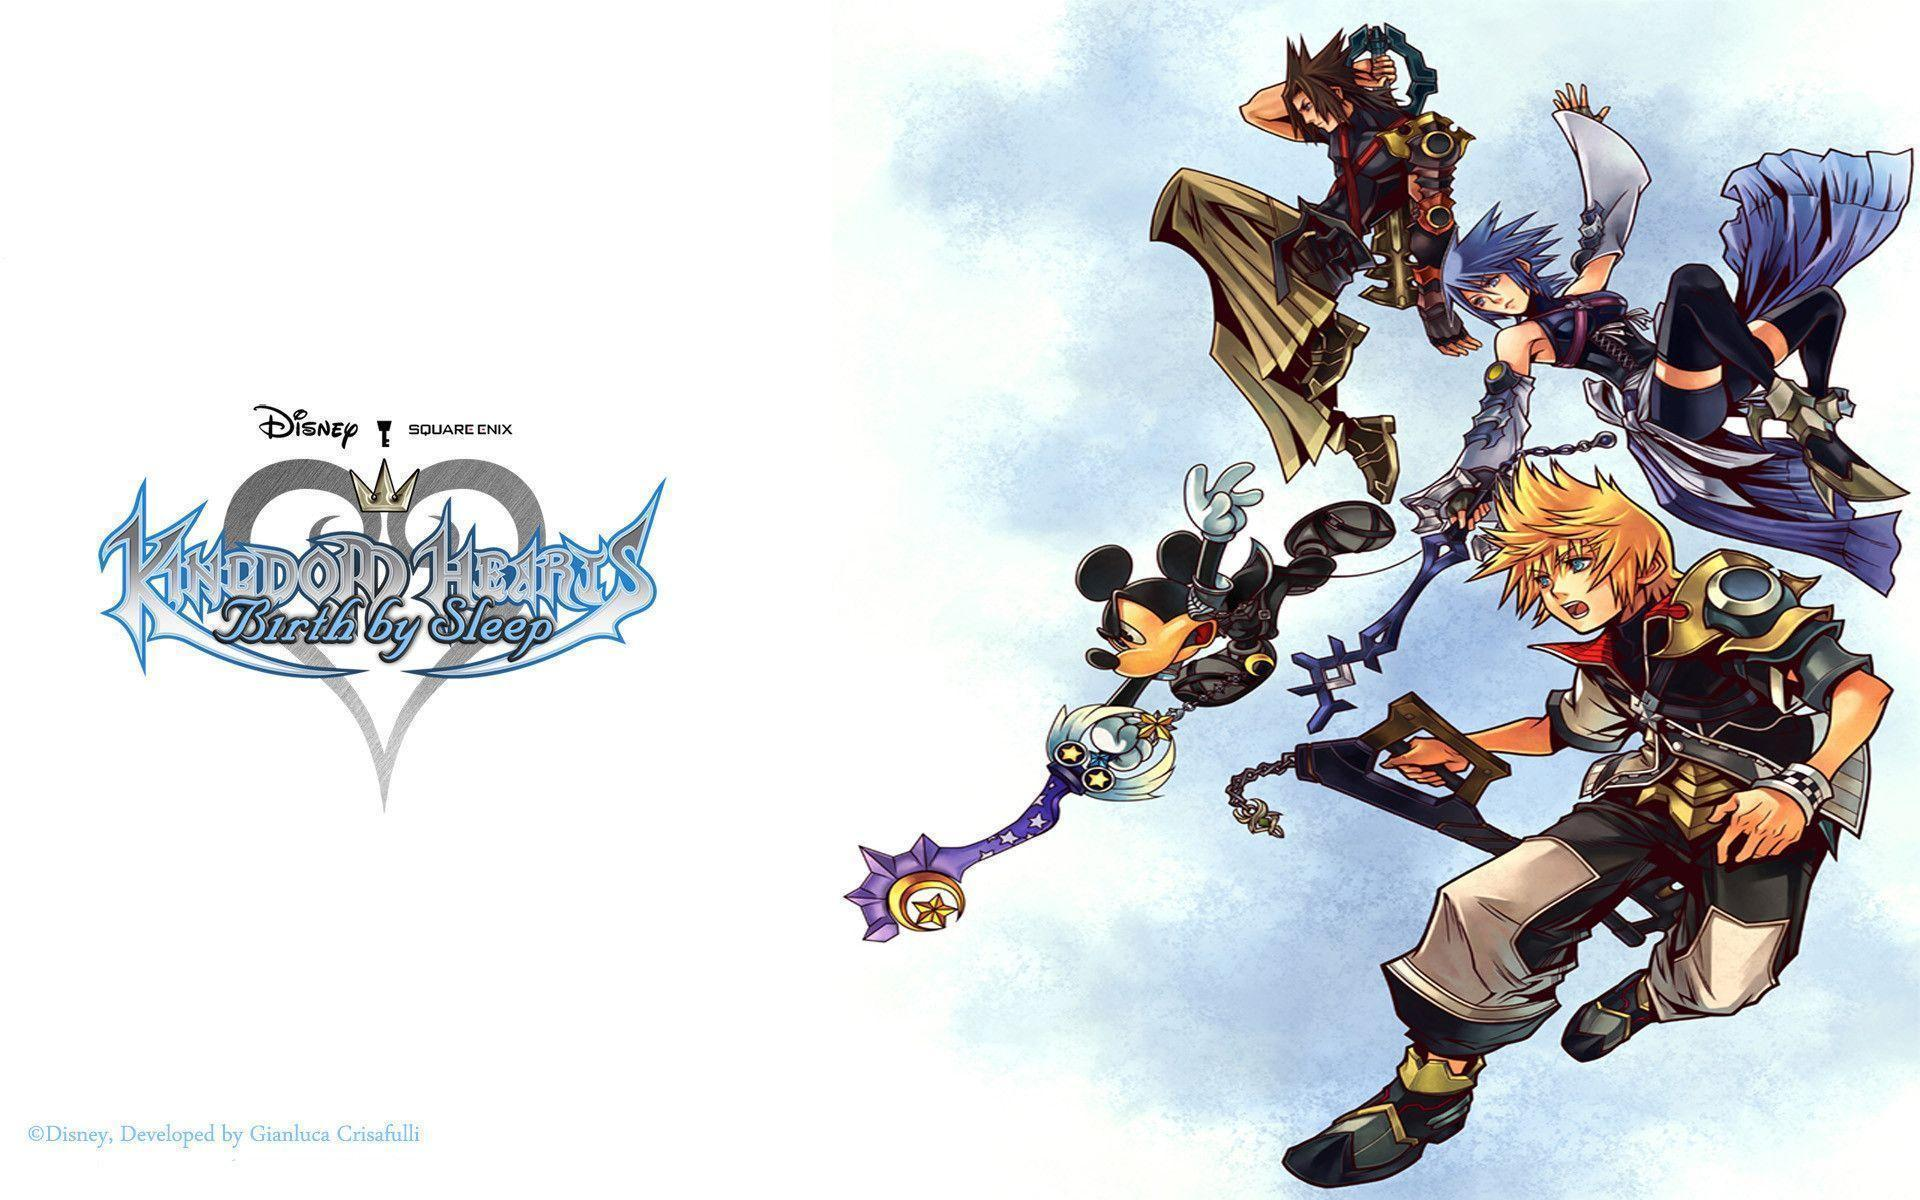 Kingdom Hearts Sora Wallpaper 1920x1080 Kingdom Hearts HD Wall...